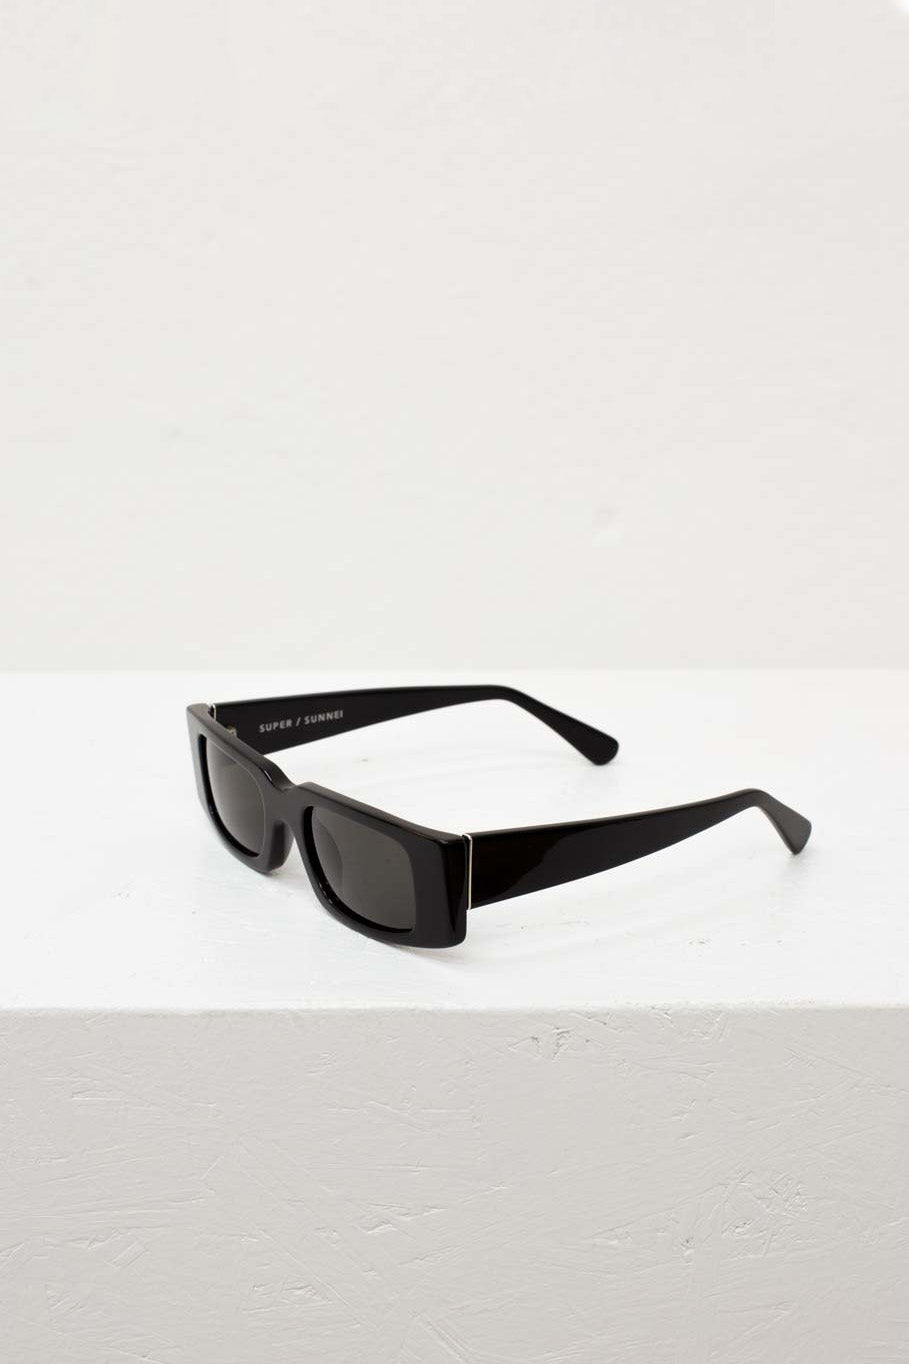 SUPER/SUNNEI BLACK SUNGLASSES